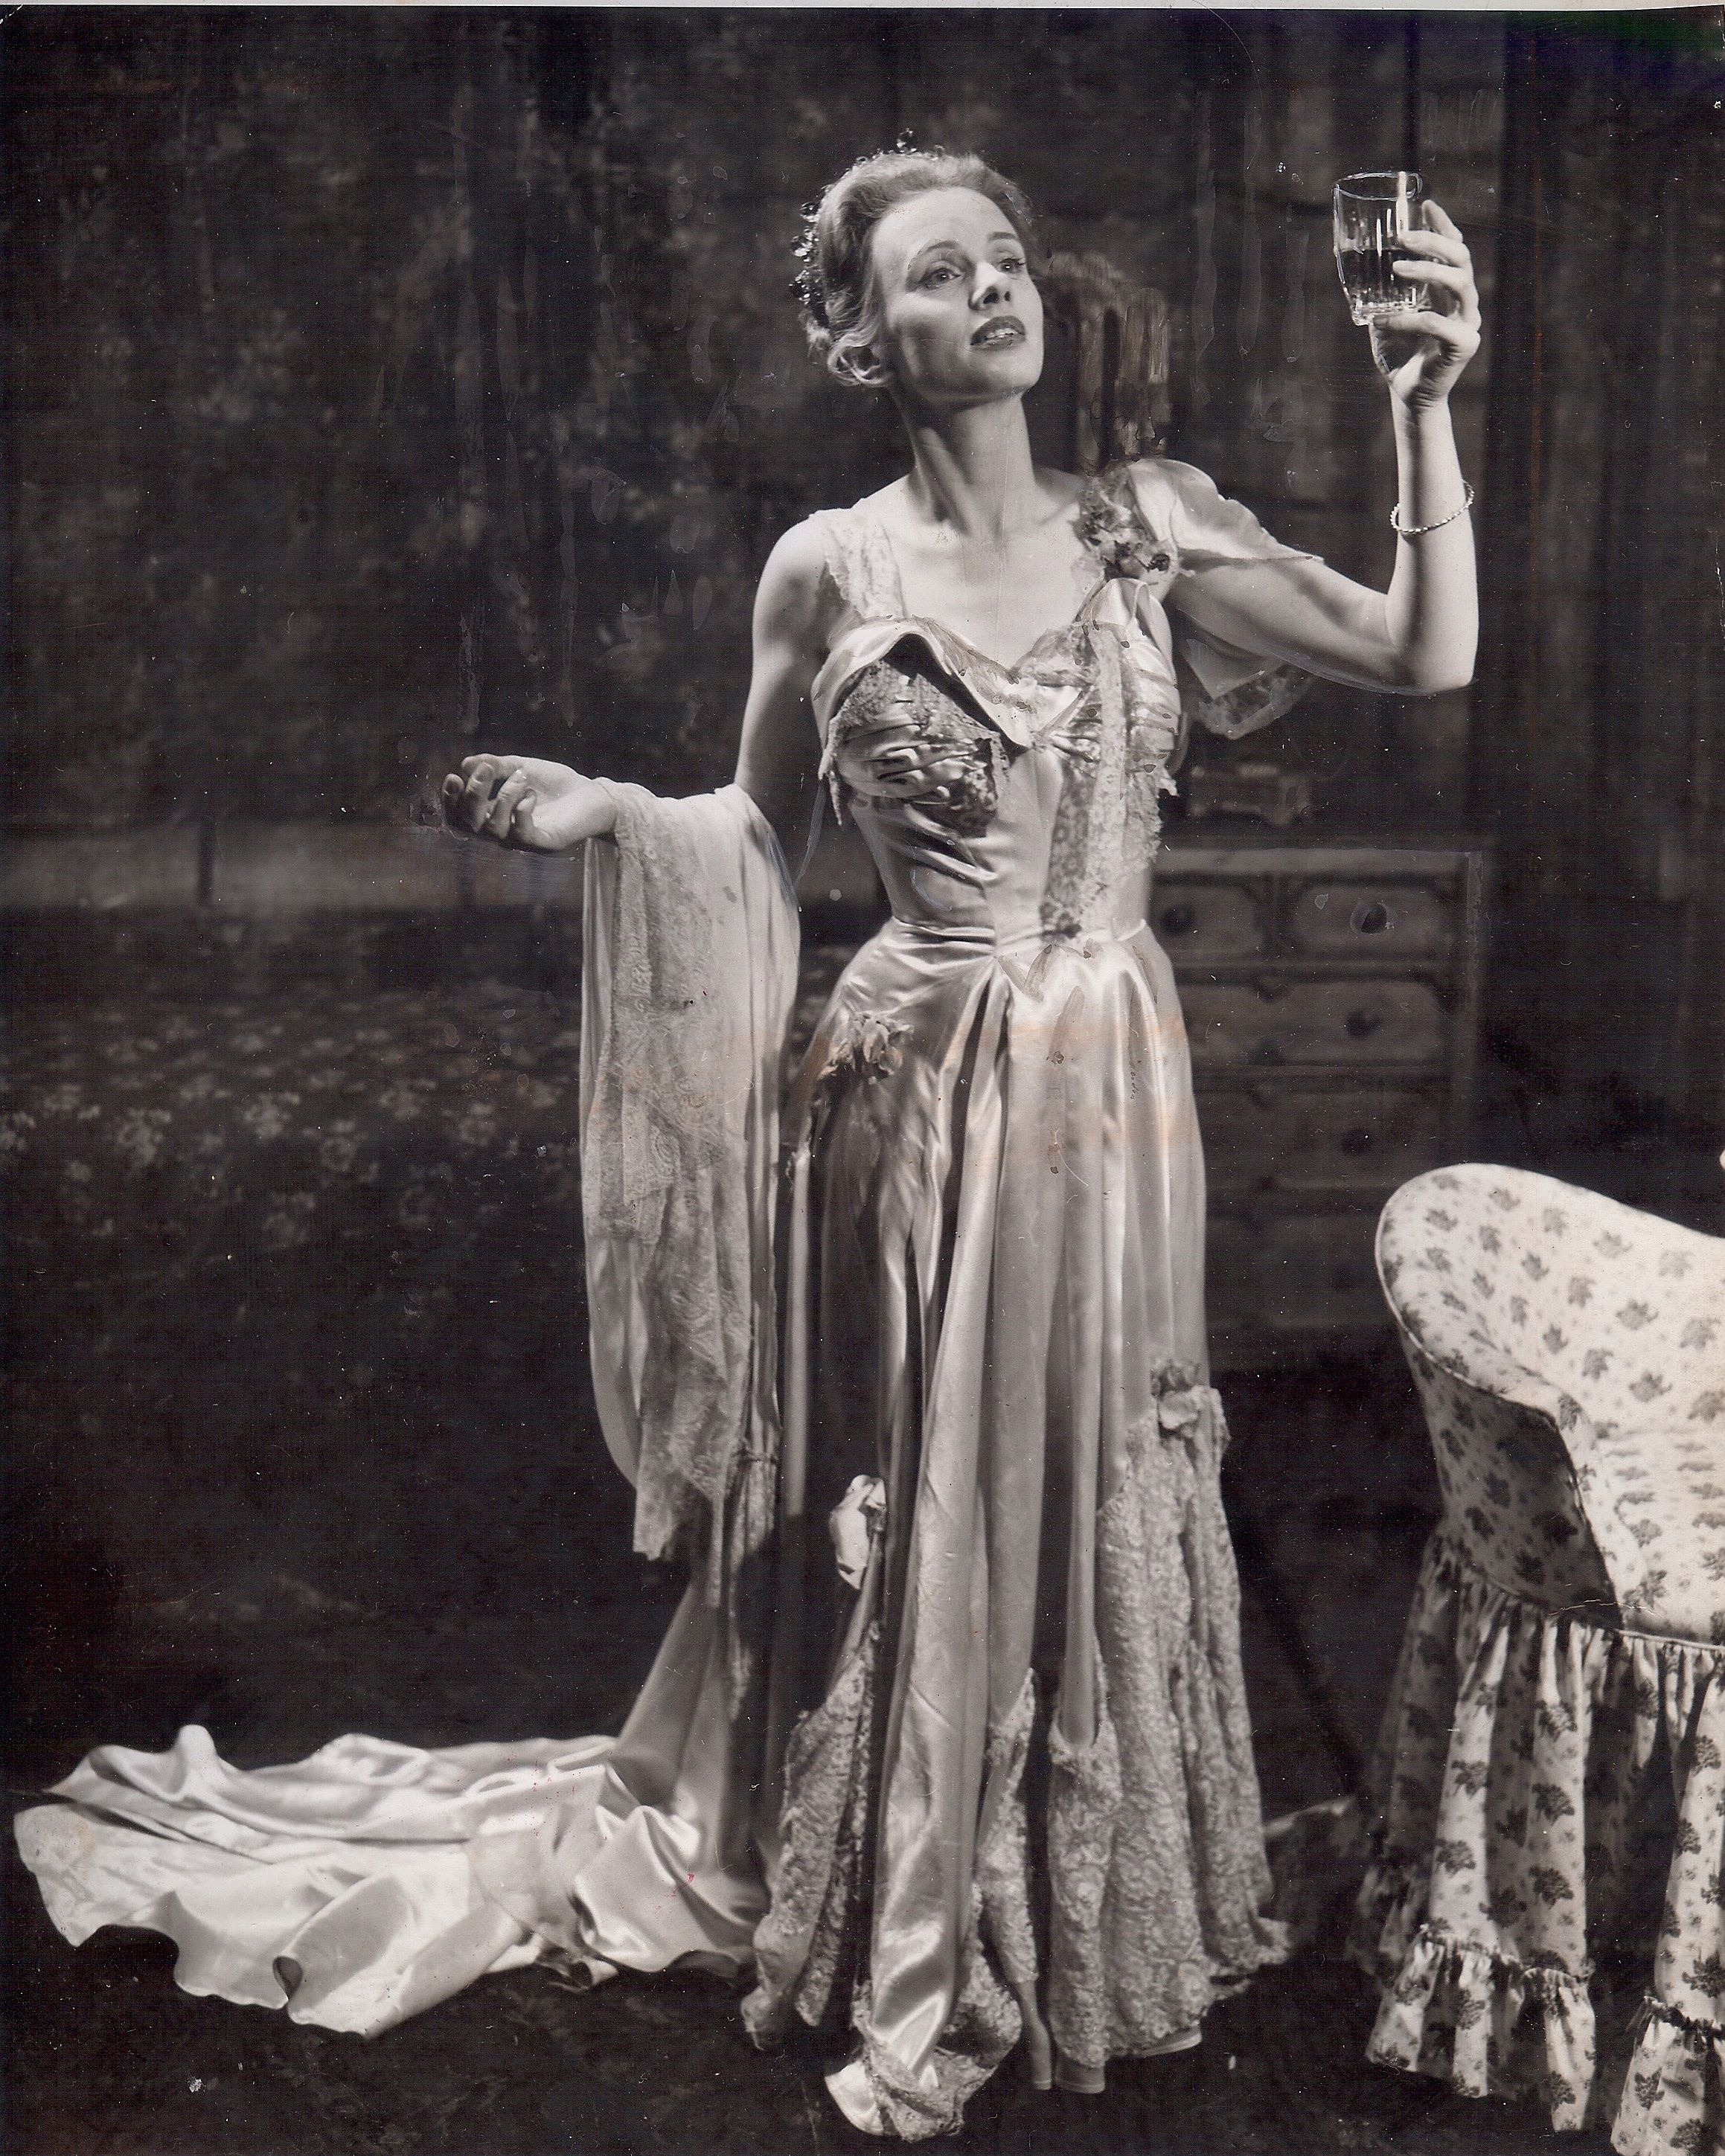 understanding blanche dubois of a streetcar named desire A streetcar named desire analytical essay streetcar named desire essay in a streetcar named desire, written by tennessee williams, blanche dubois, a seemingly extravagant and sensual woman, visits her sister and brother-in-law after losing her family fortune and estate, only to find despair, heartbreak, and violence.